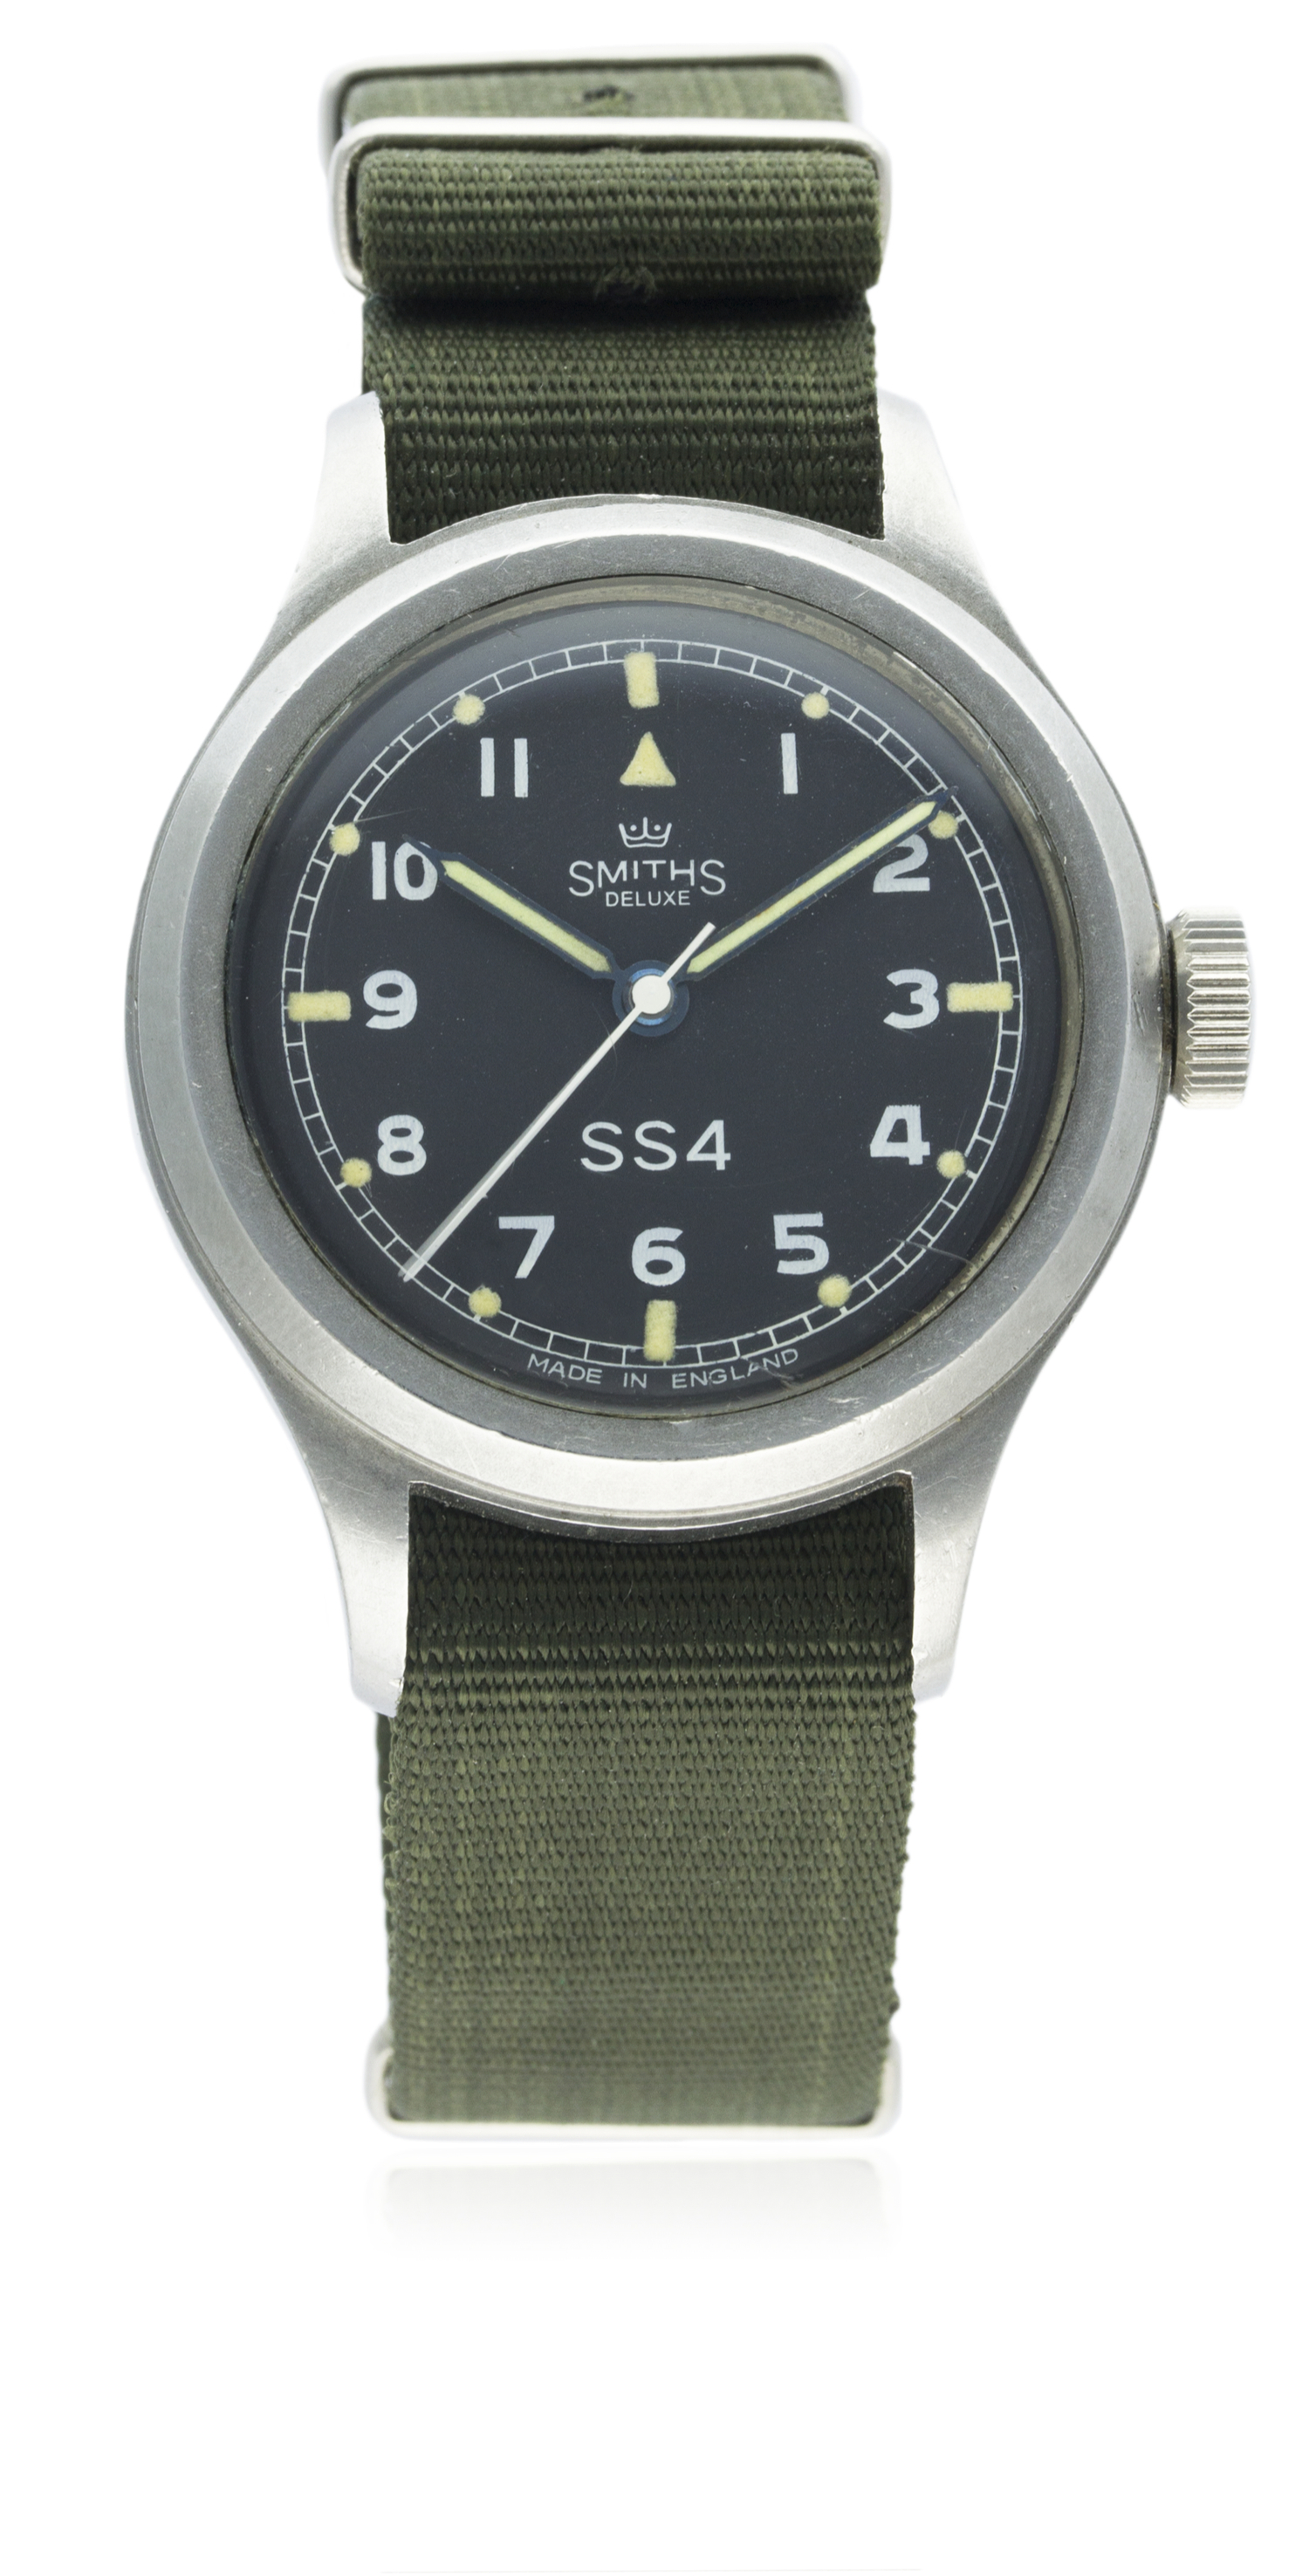 bar military original the uk view smiths image click to superb in watches of prs this